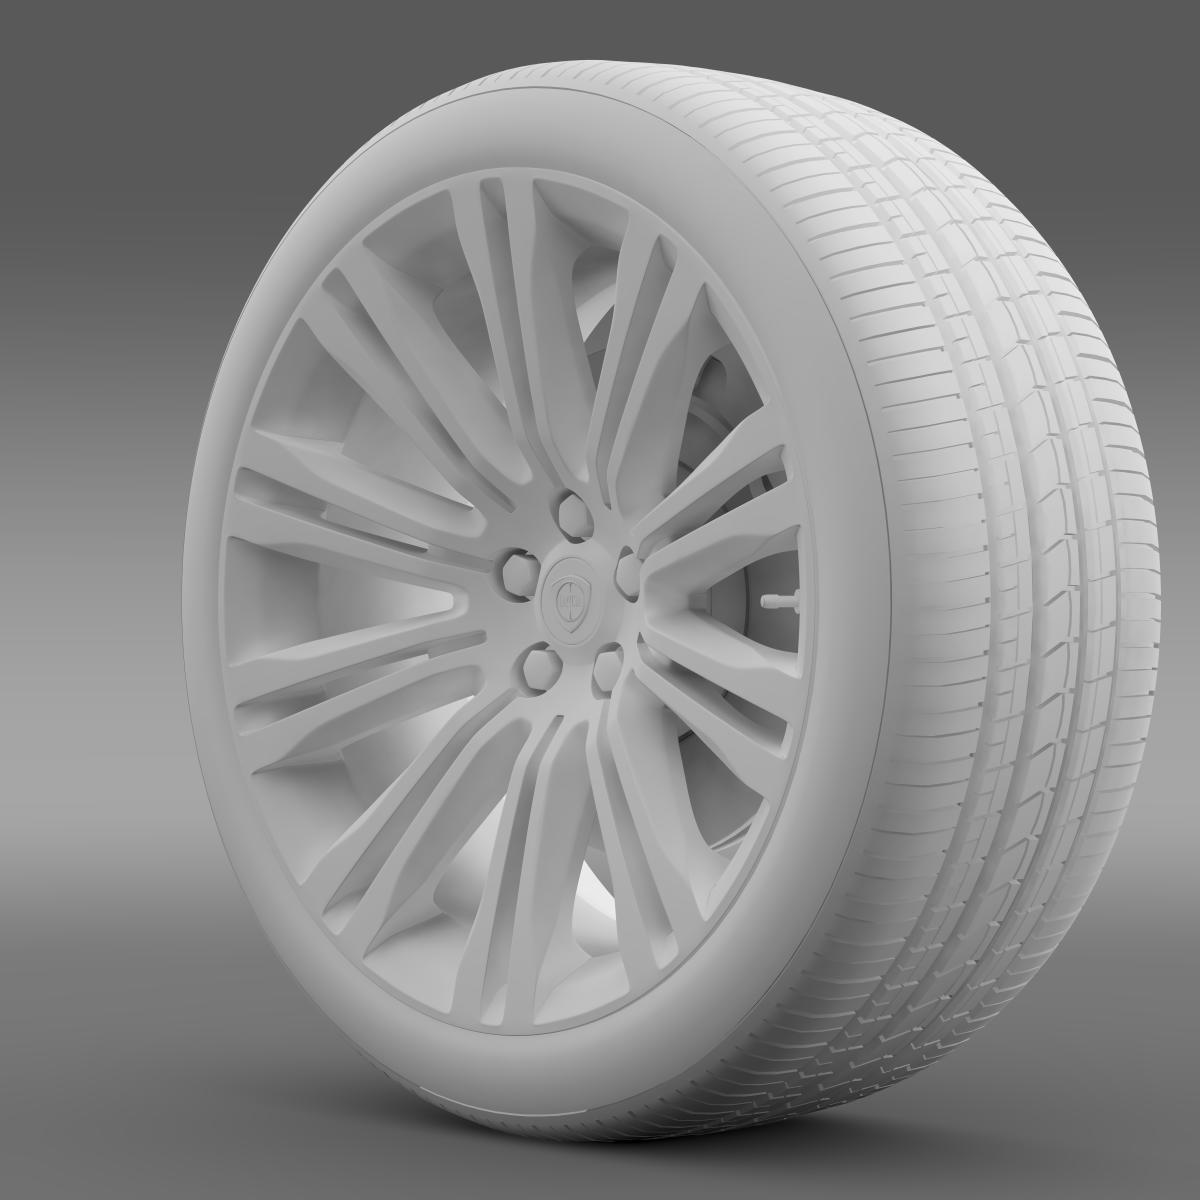 lancia thema 2014 wheel 3d model 3ds max fbx c4d lwo ma mb hrc xsi obj 210734